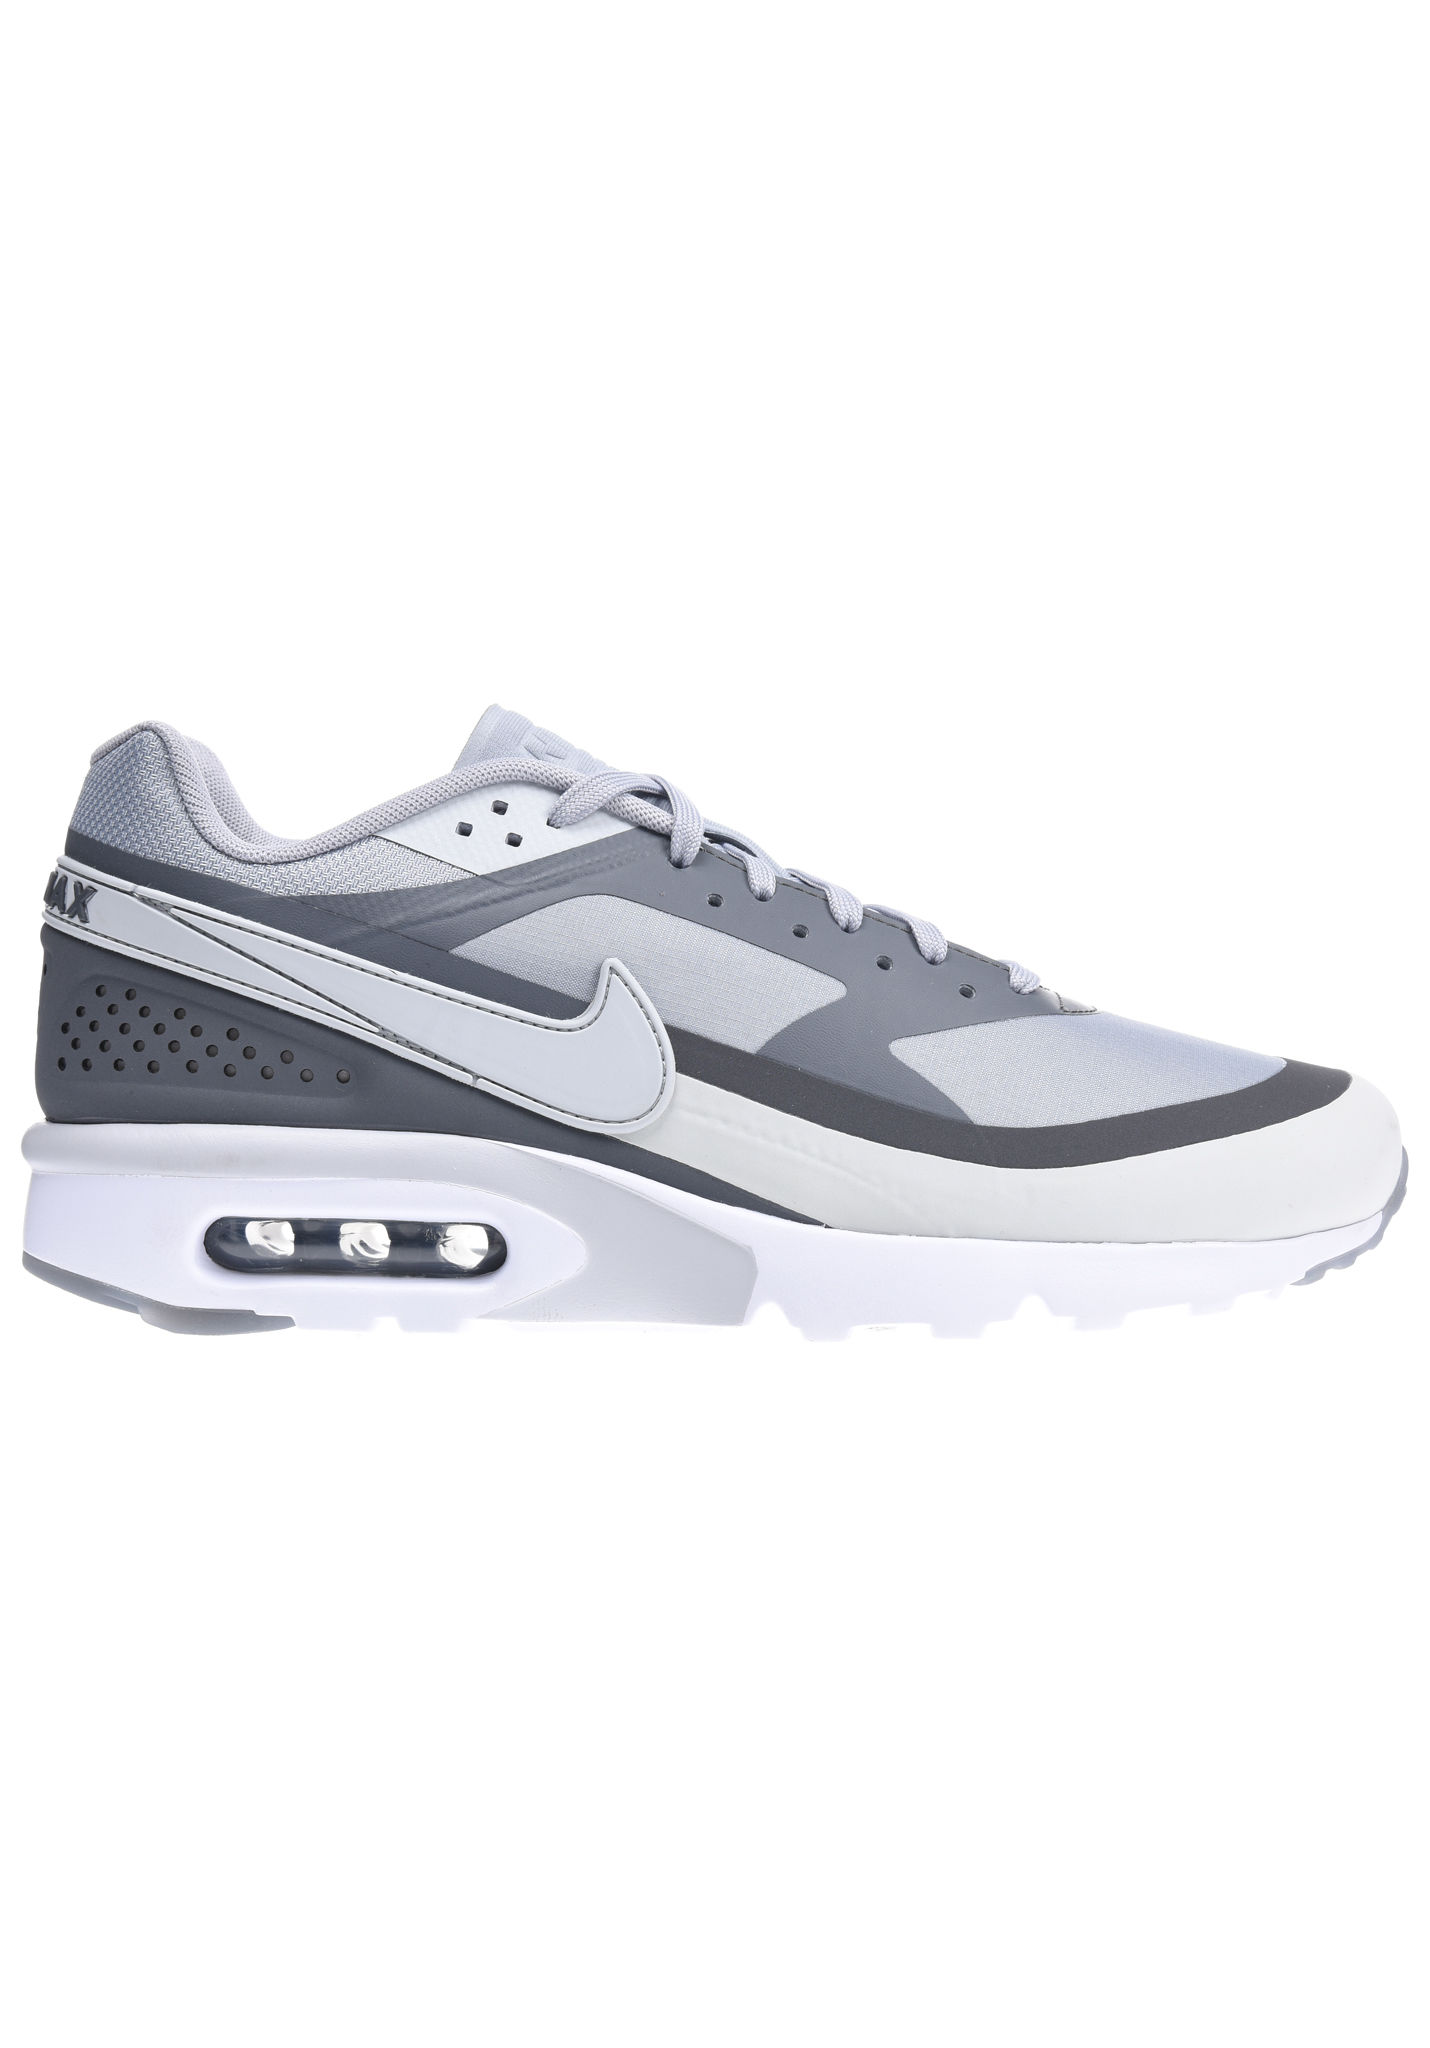 quality design 3d345 3ec37 NIKE SPORTSWEAR Air Max BW Ultra - Sneakers for Men - Grey - Planet Sports